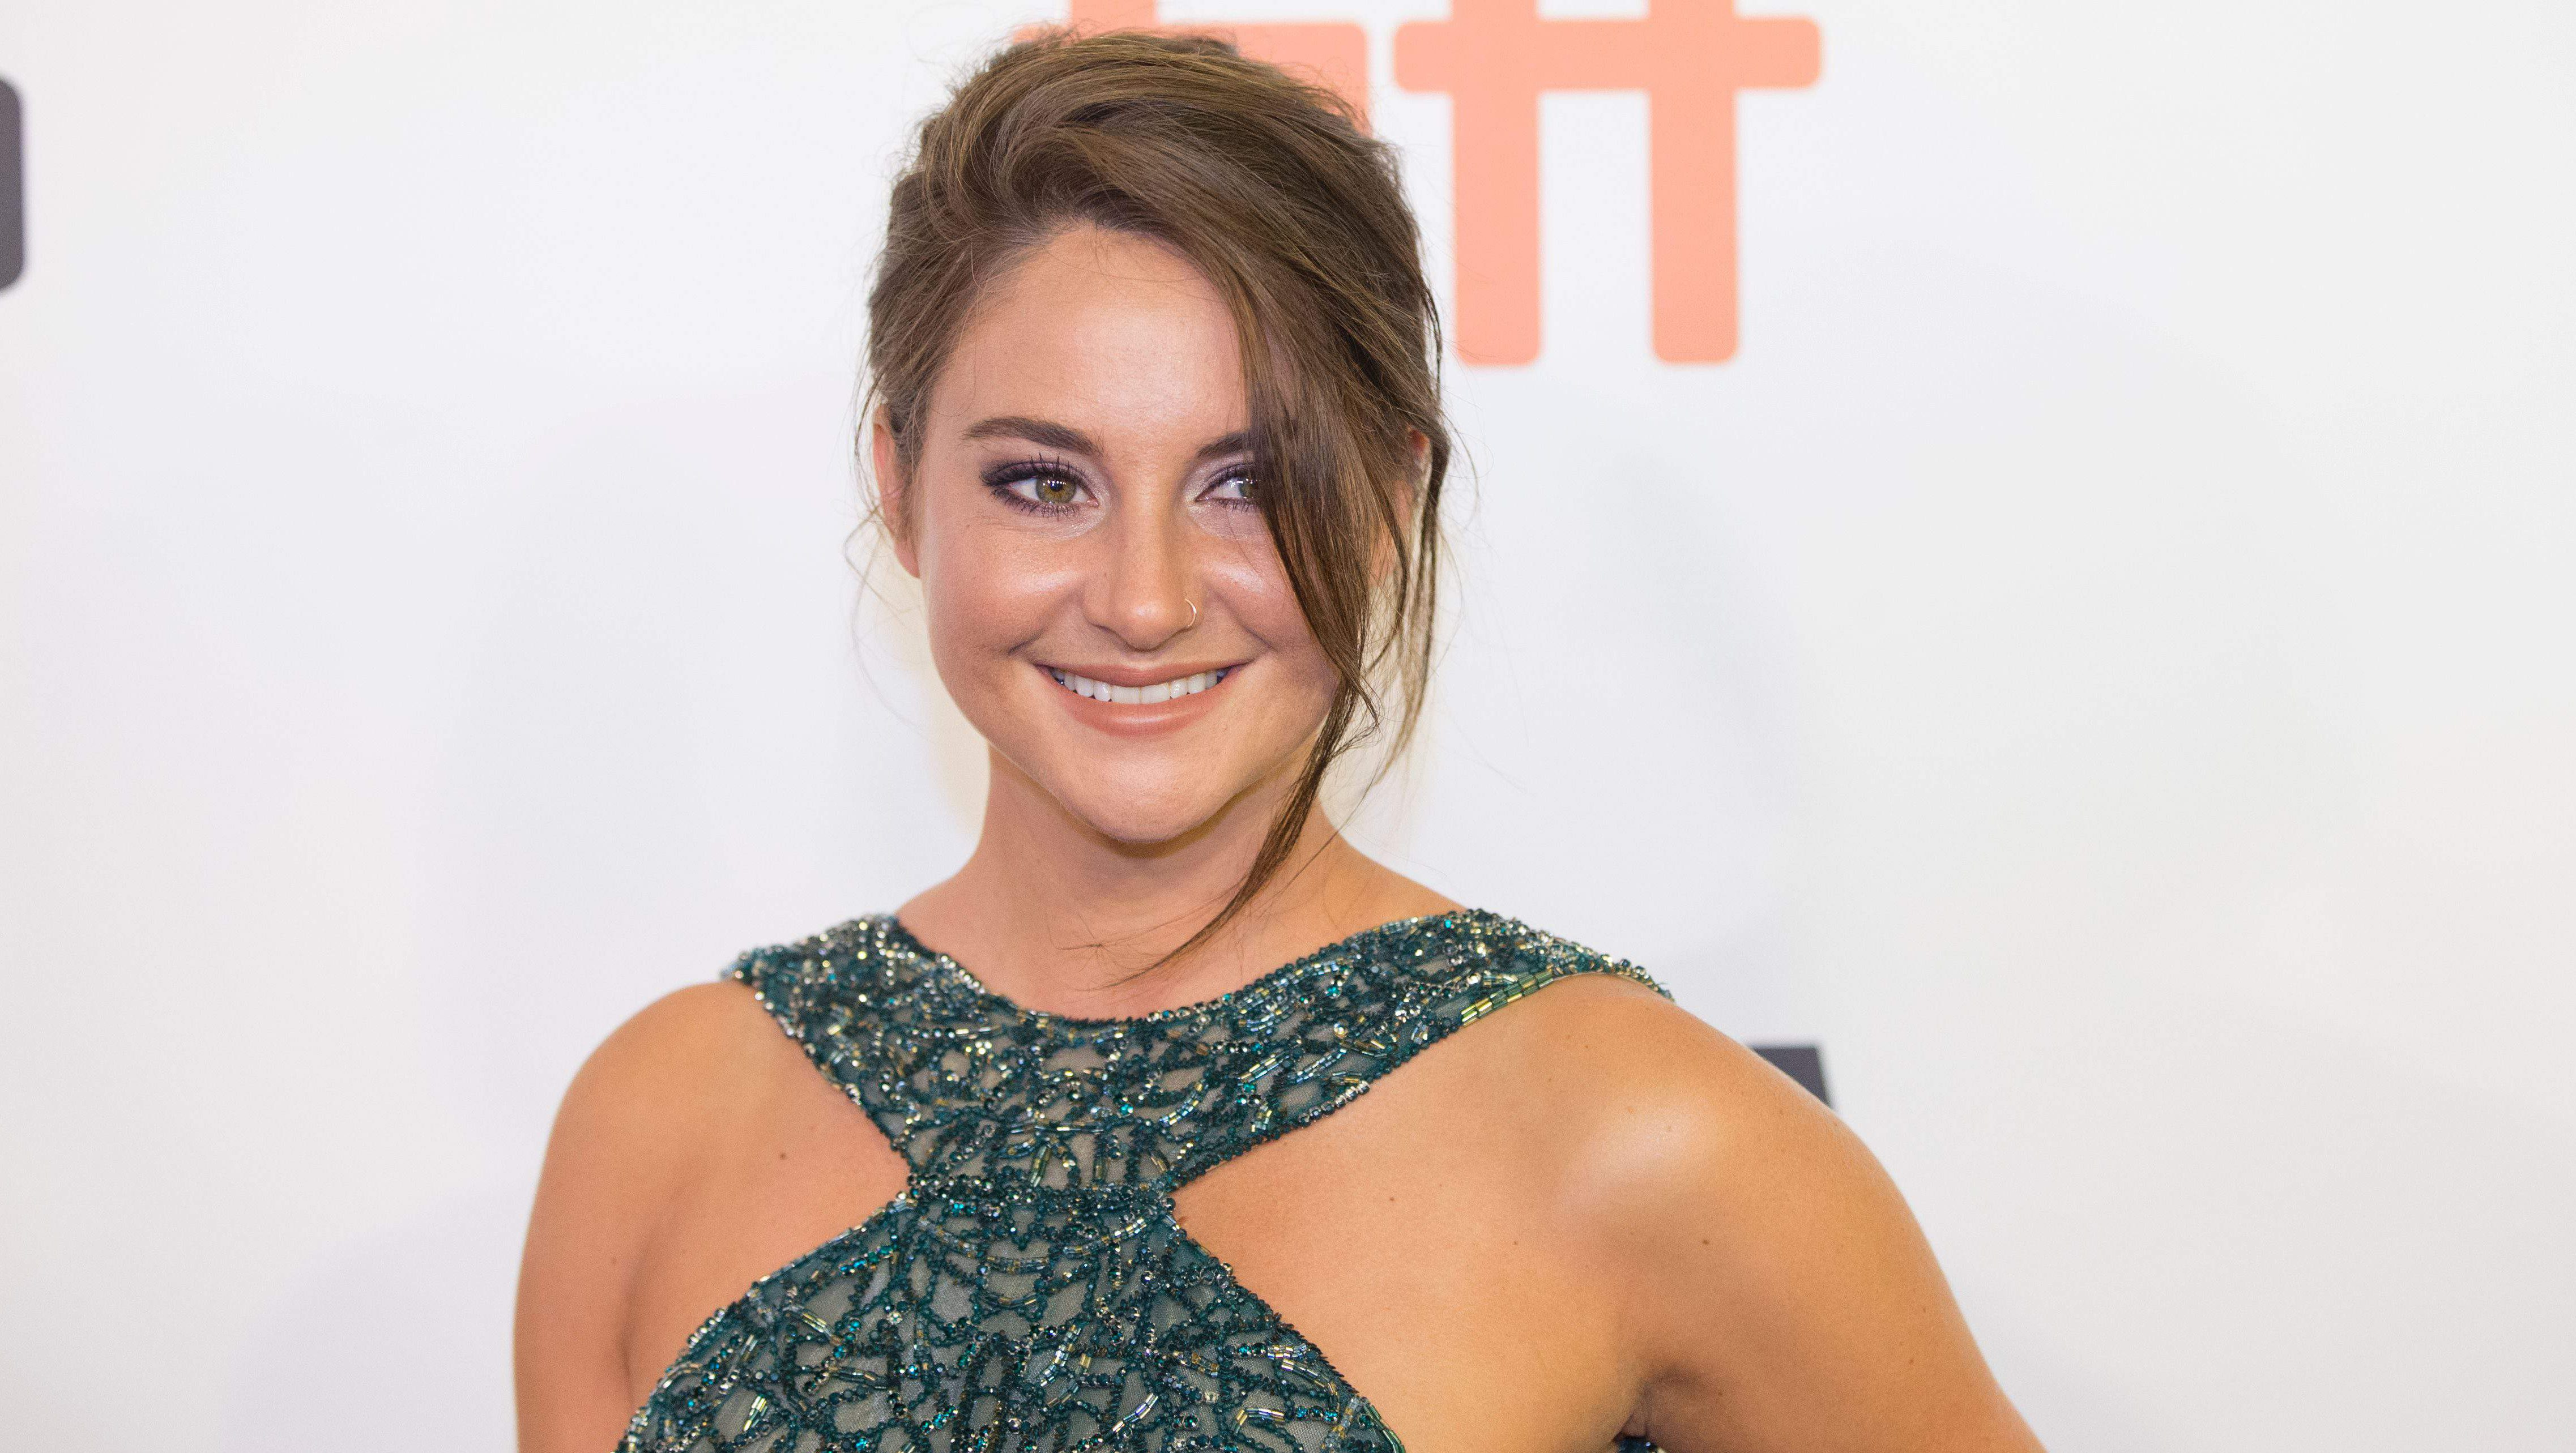 Shailene Woodley Relationship Status Who Is She Dating Heavy Com When i didn't show up at my girlfriend's house, she called my mother. shailene woodley relationship status